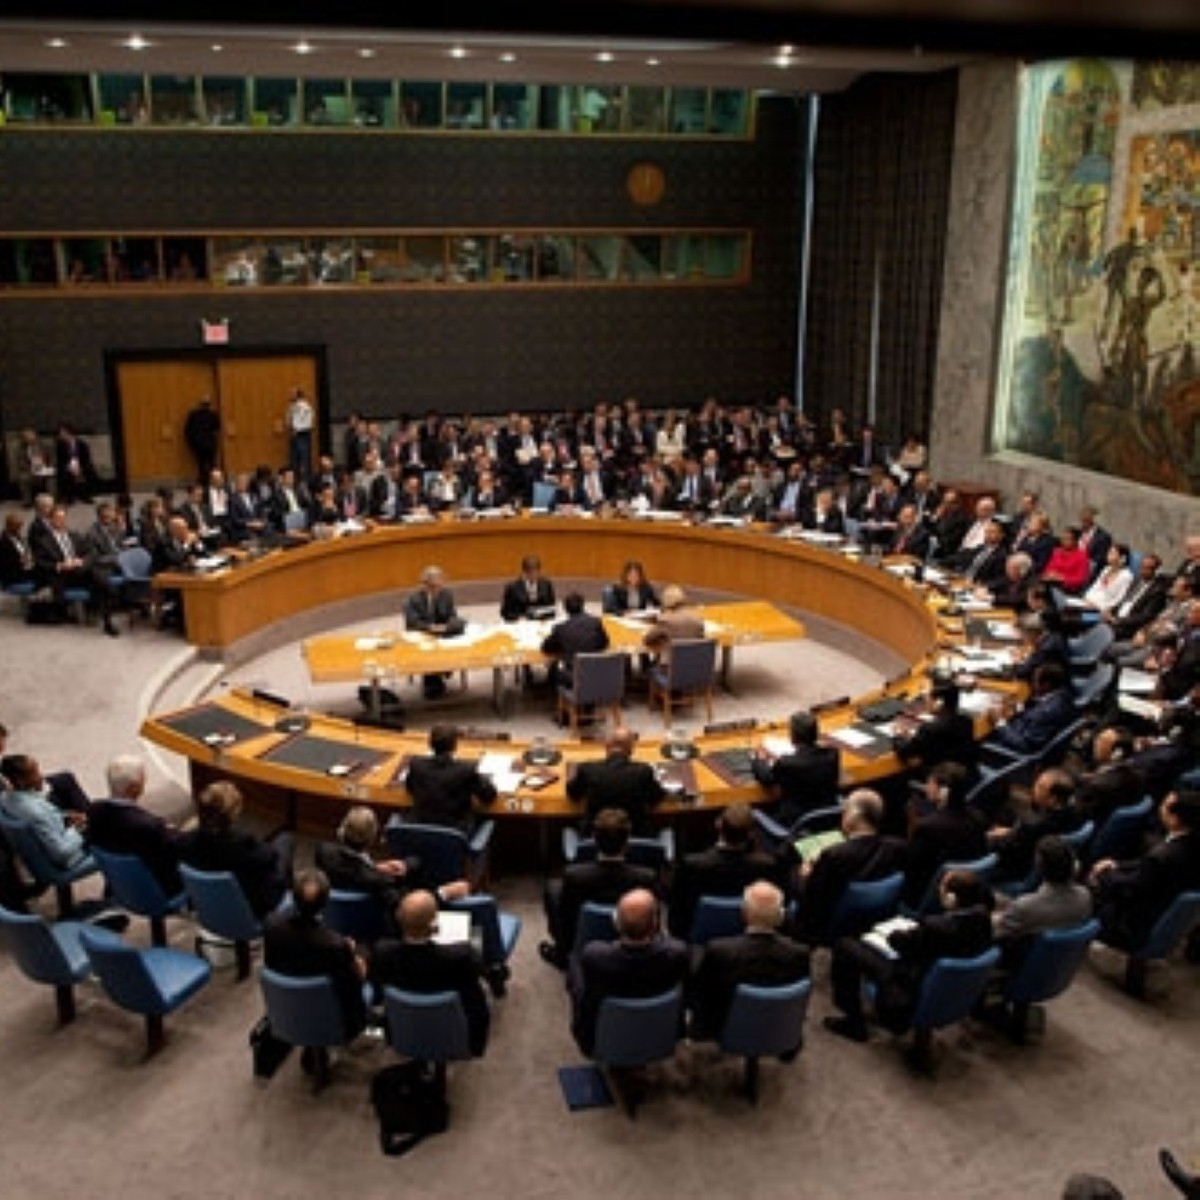 UN security council resolution calling on Syria violence to end immediately was blocked by China and Russia